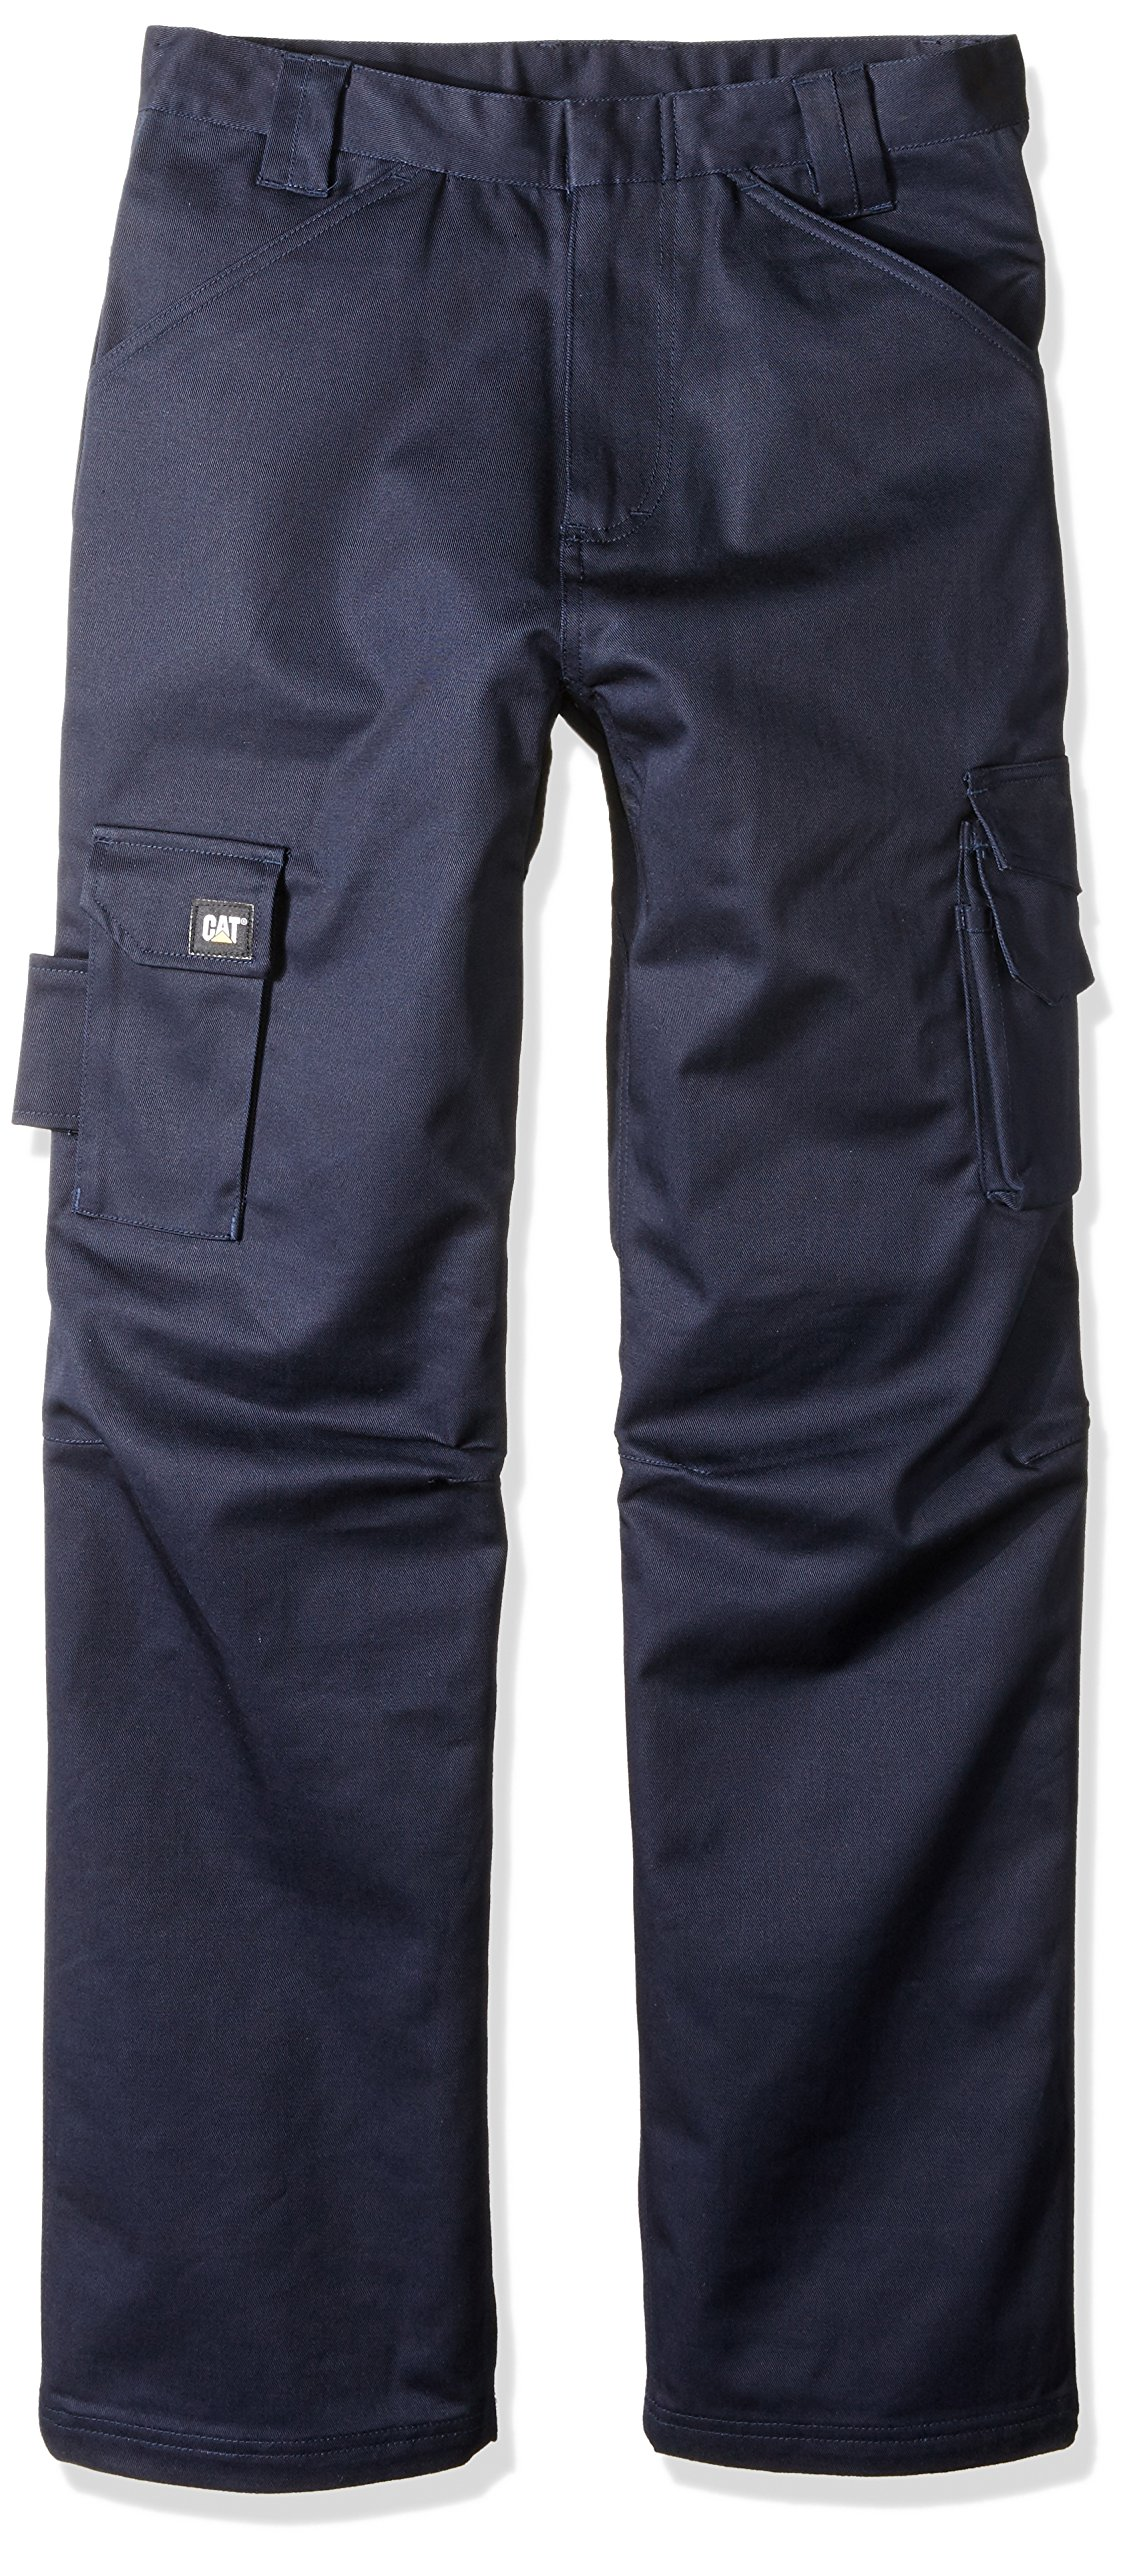 Caterpillar Flame Resistant Cargo Pant, Flame Resistant Navy, 34W x 32L